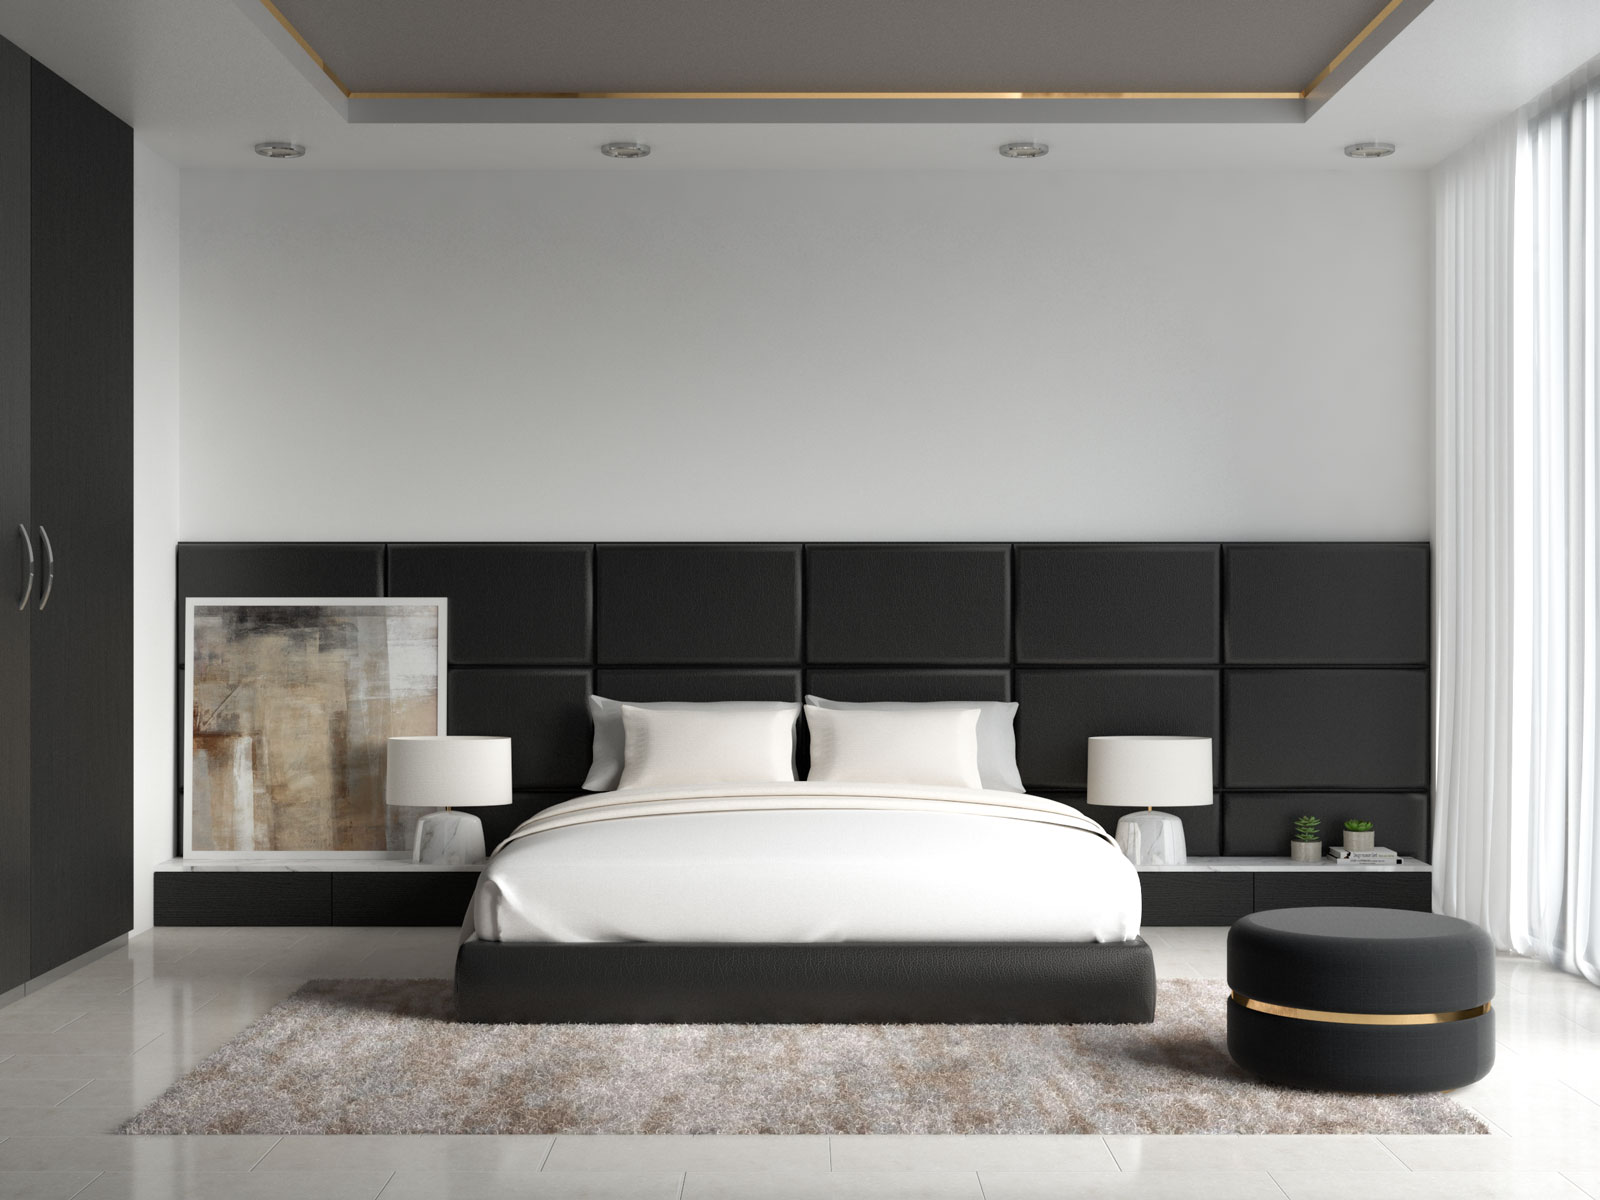 White and cream bedding with black furnishings